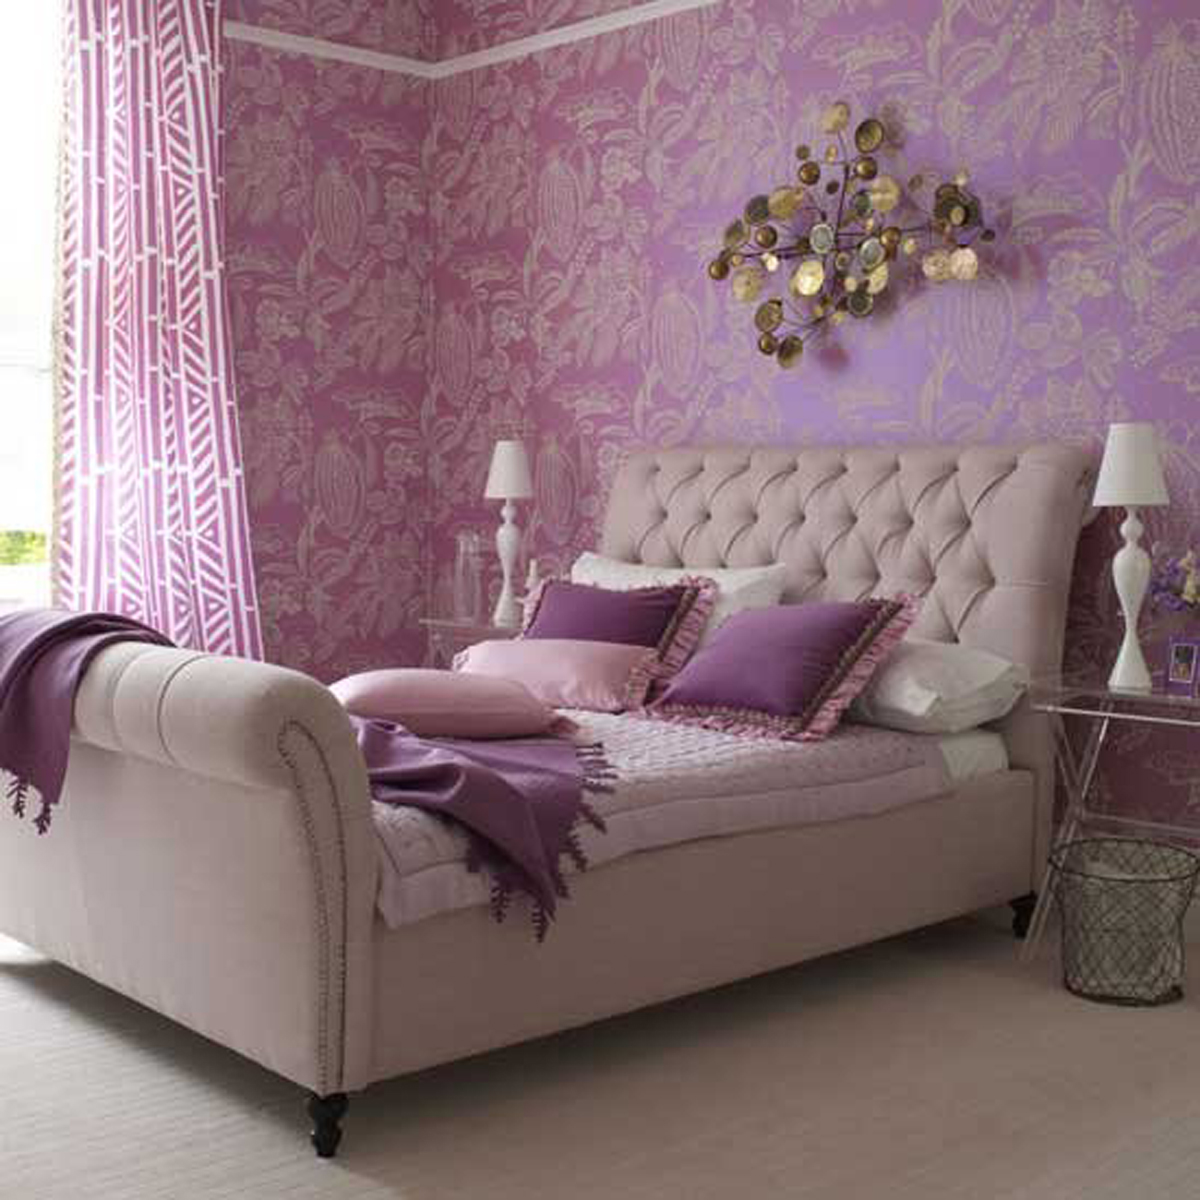 Decorative bedroom decor designs Decor bedroom